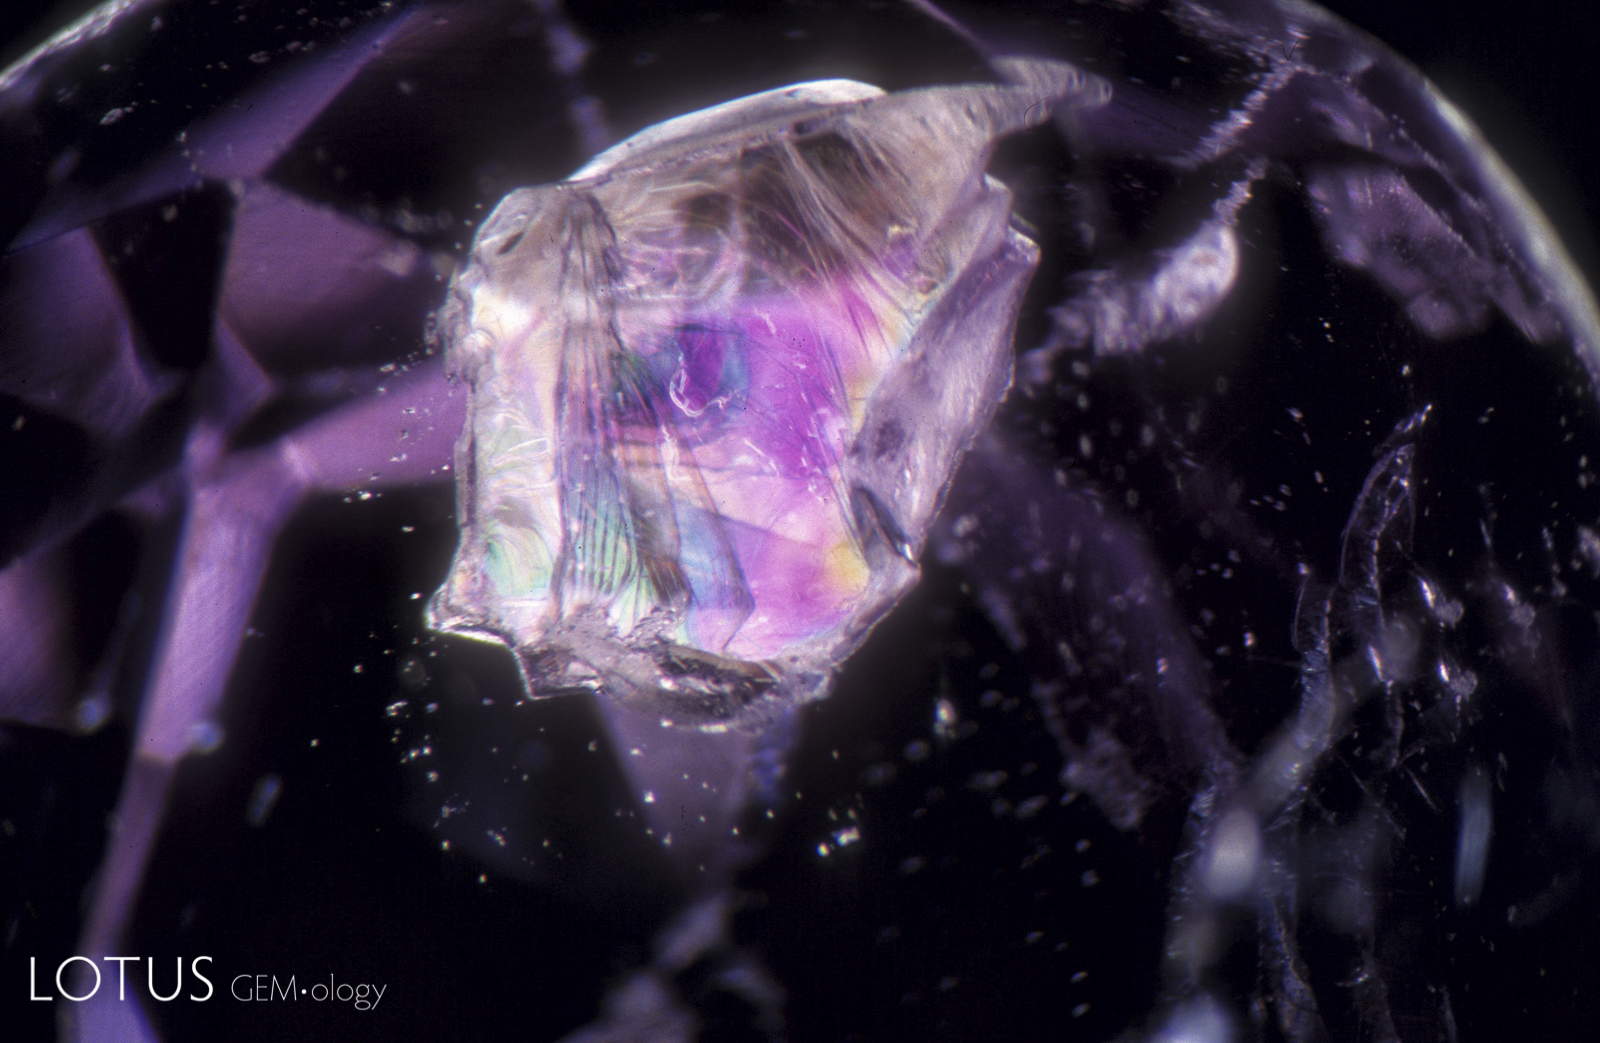 An iridescent booklet of translucent white muscovite mica resides in the interior of a mauve spinel from Sri Lanka.